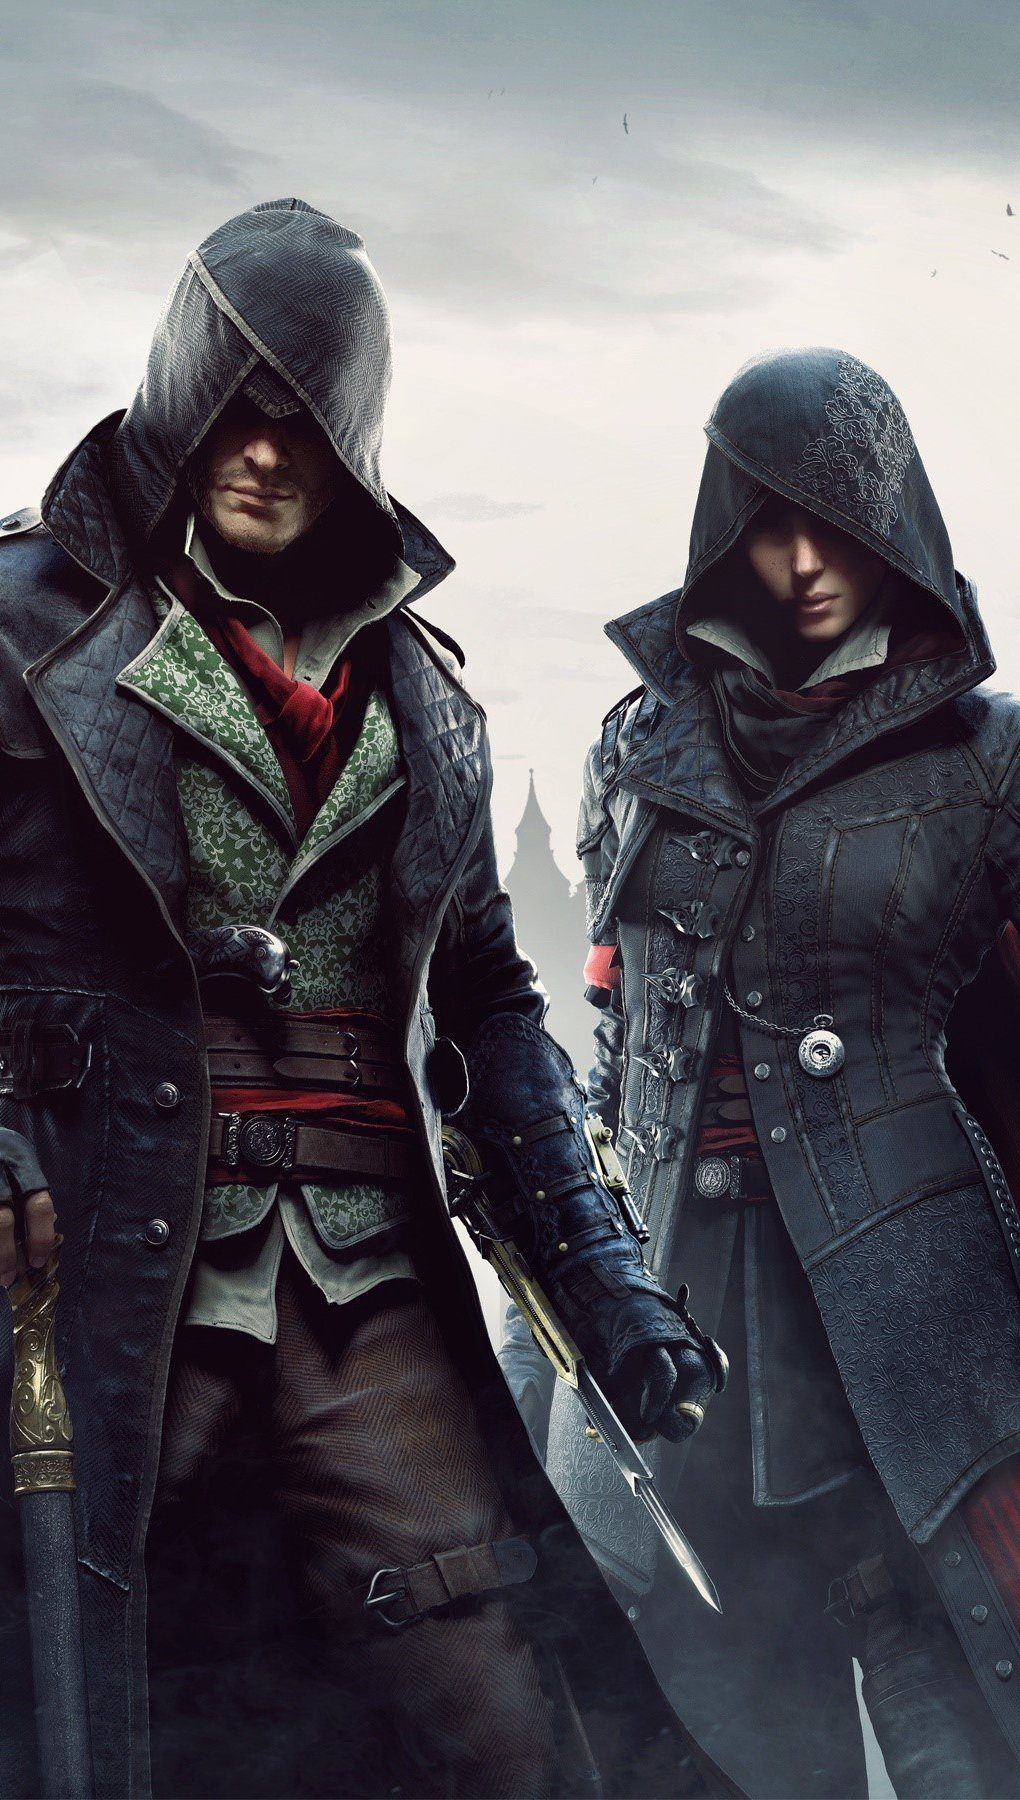 Wallpaper Characters of Assassins Creed Syndicate Vertical